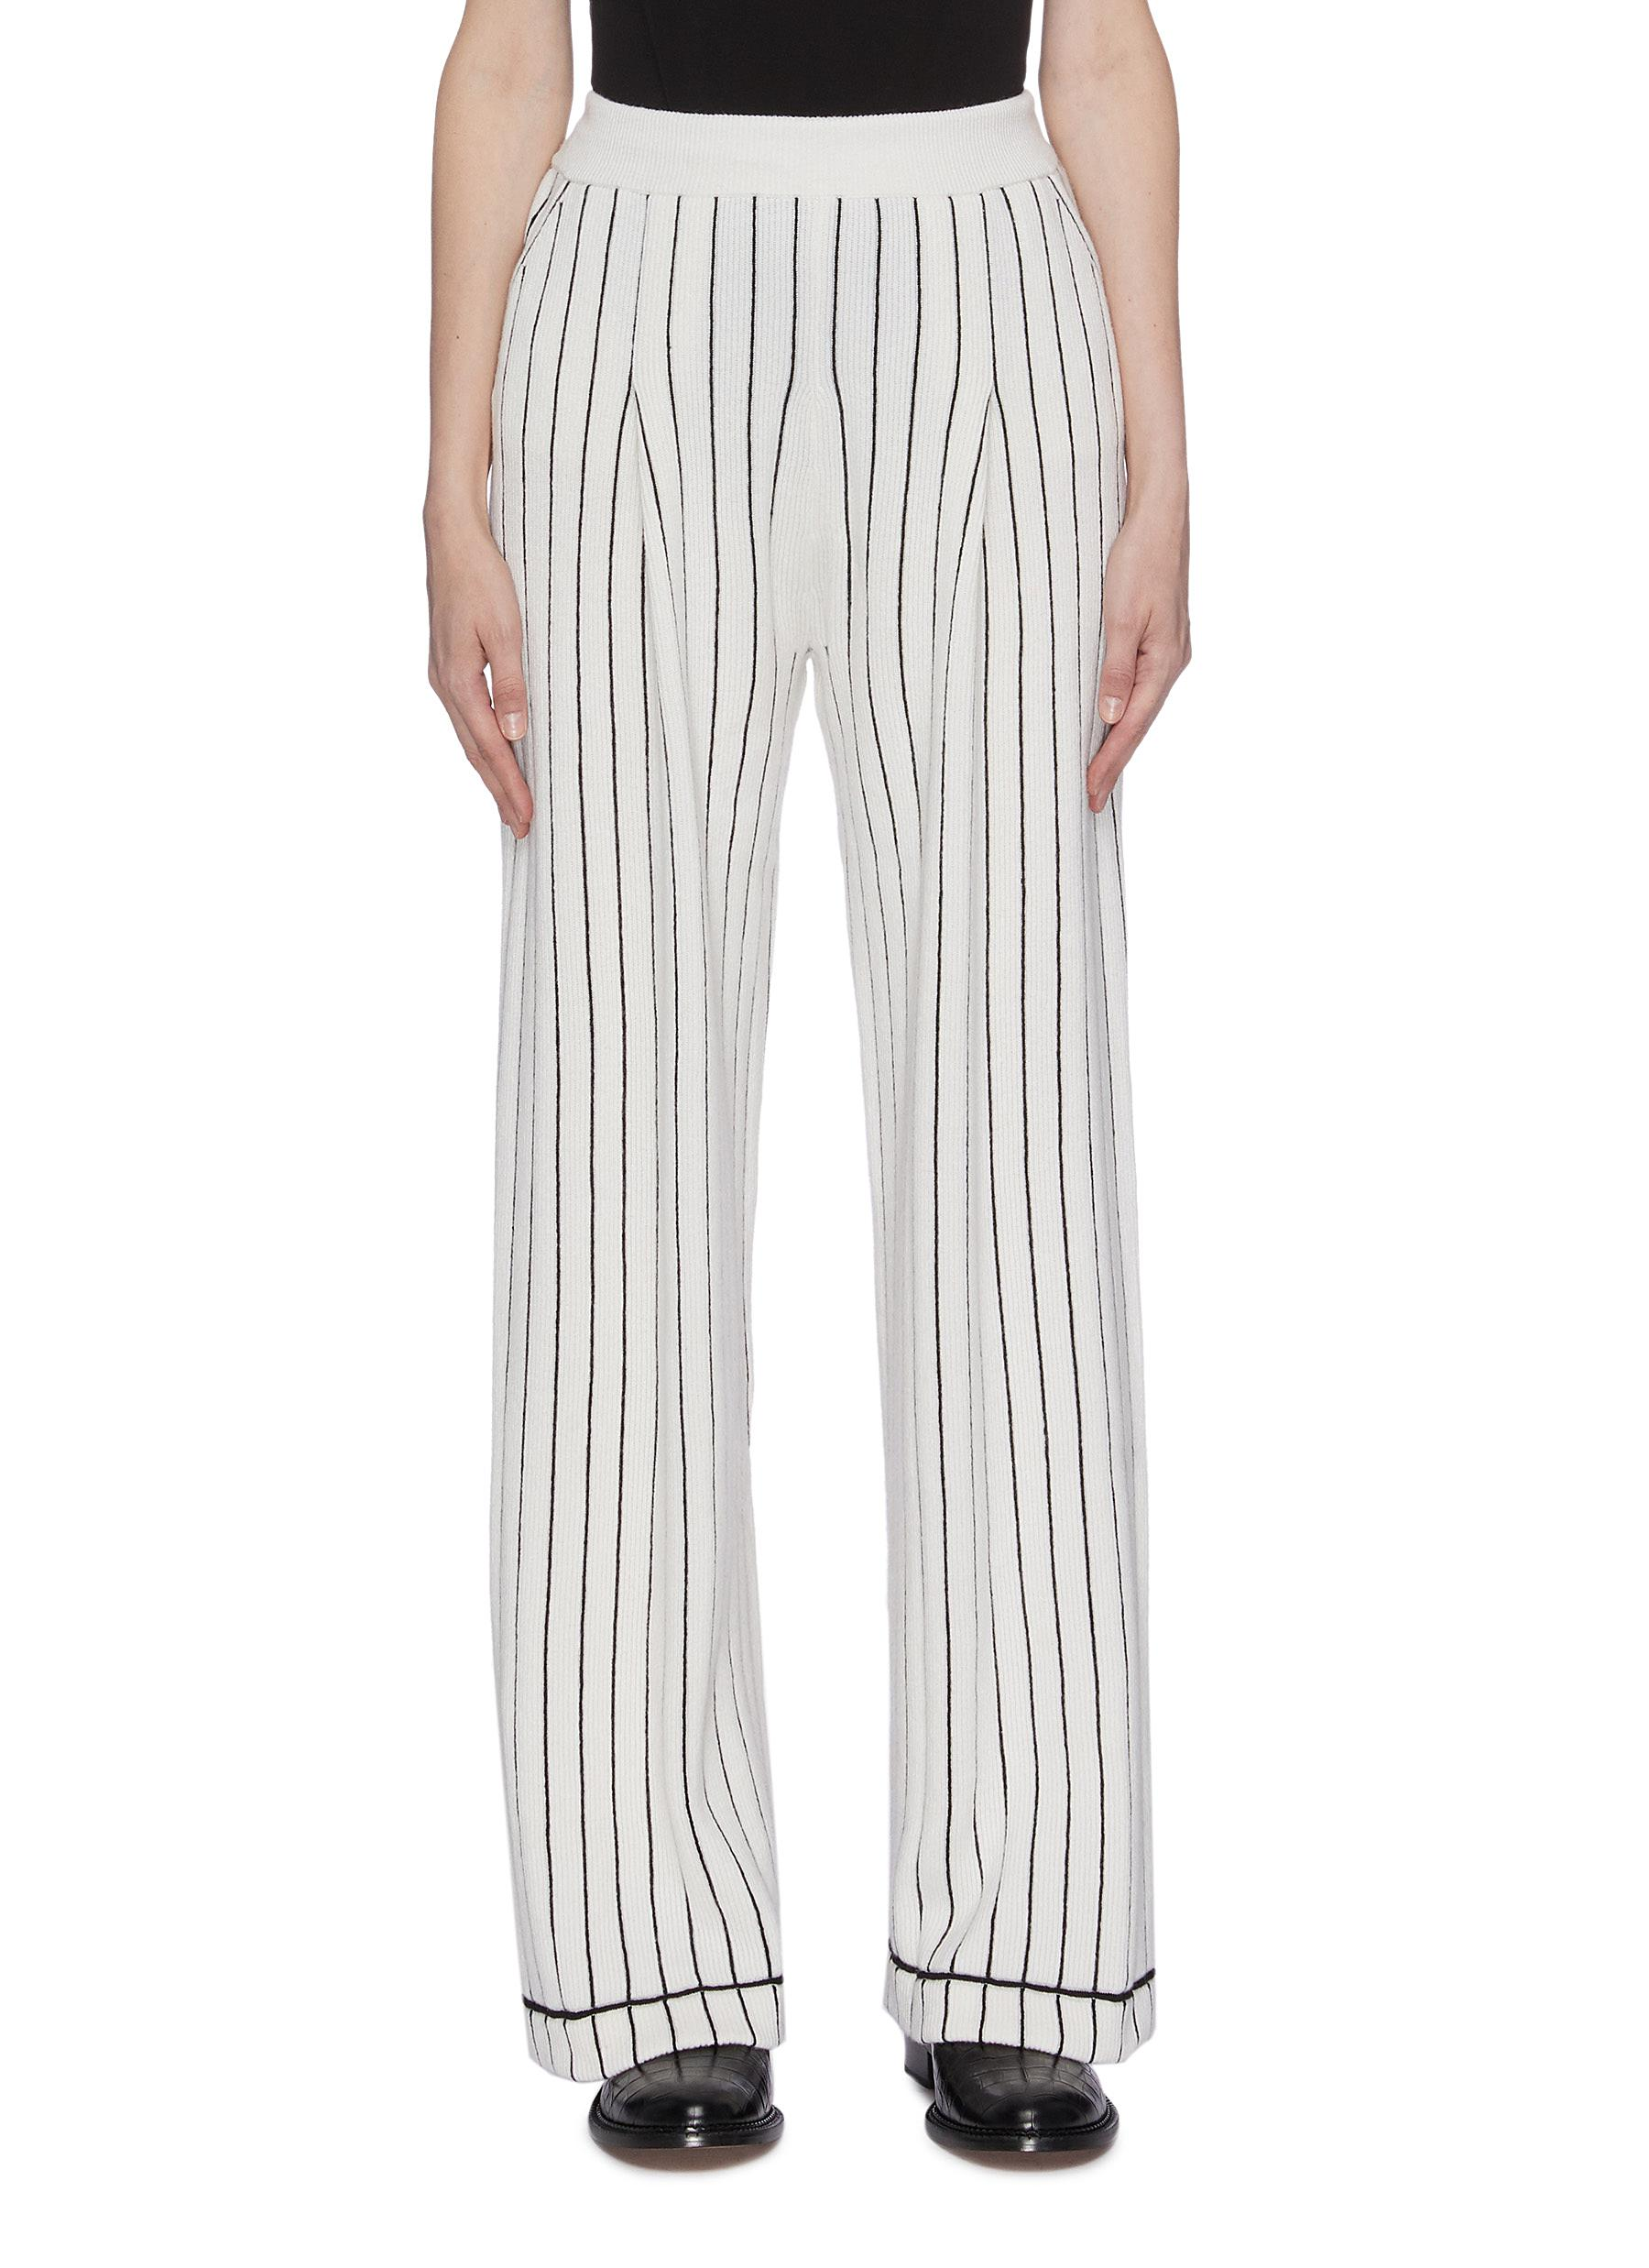 Stripe cashmere knit pants by Barrie